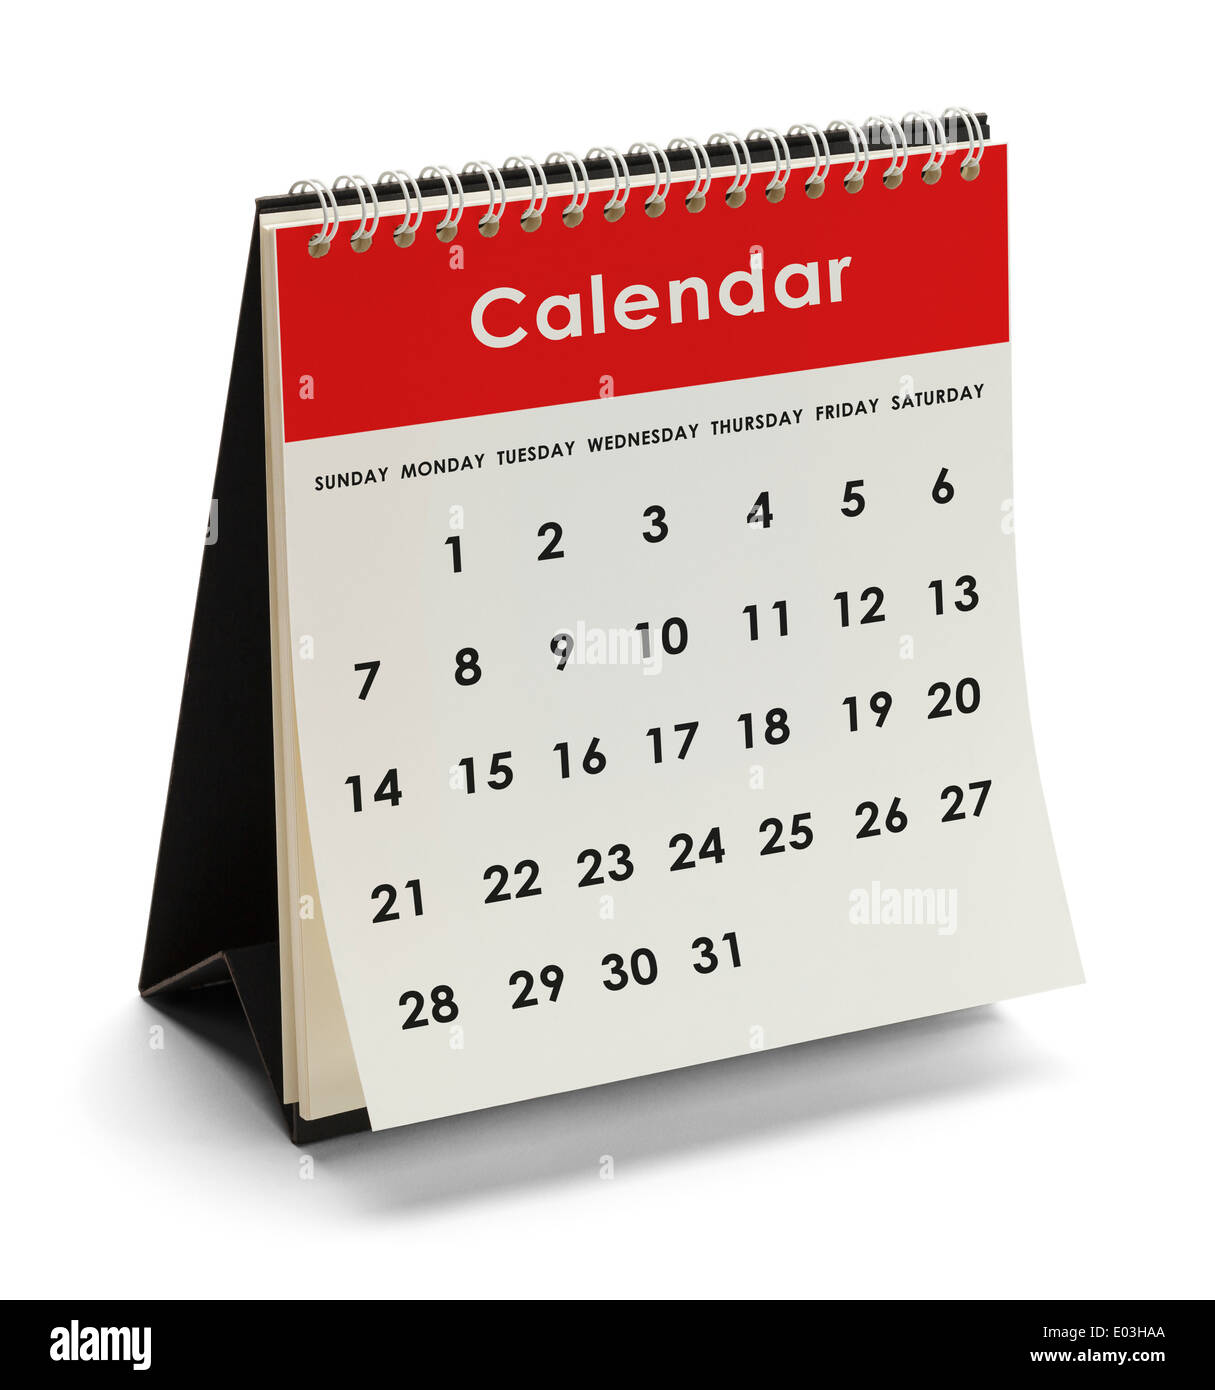 Generic Calendar With Days and Dates Isolated on White Background. - Stock Image